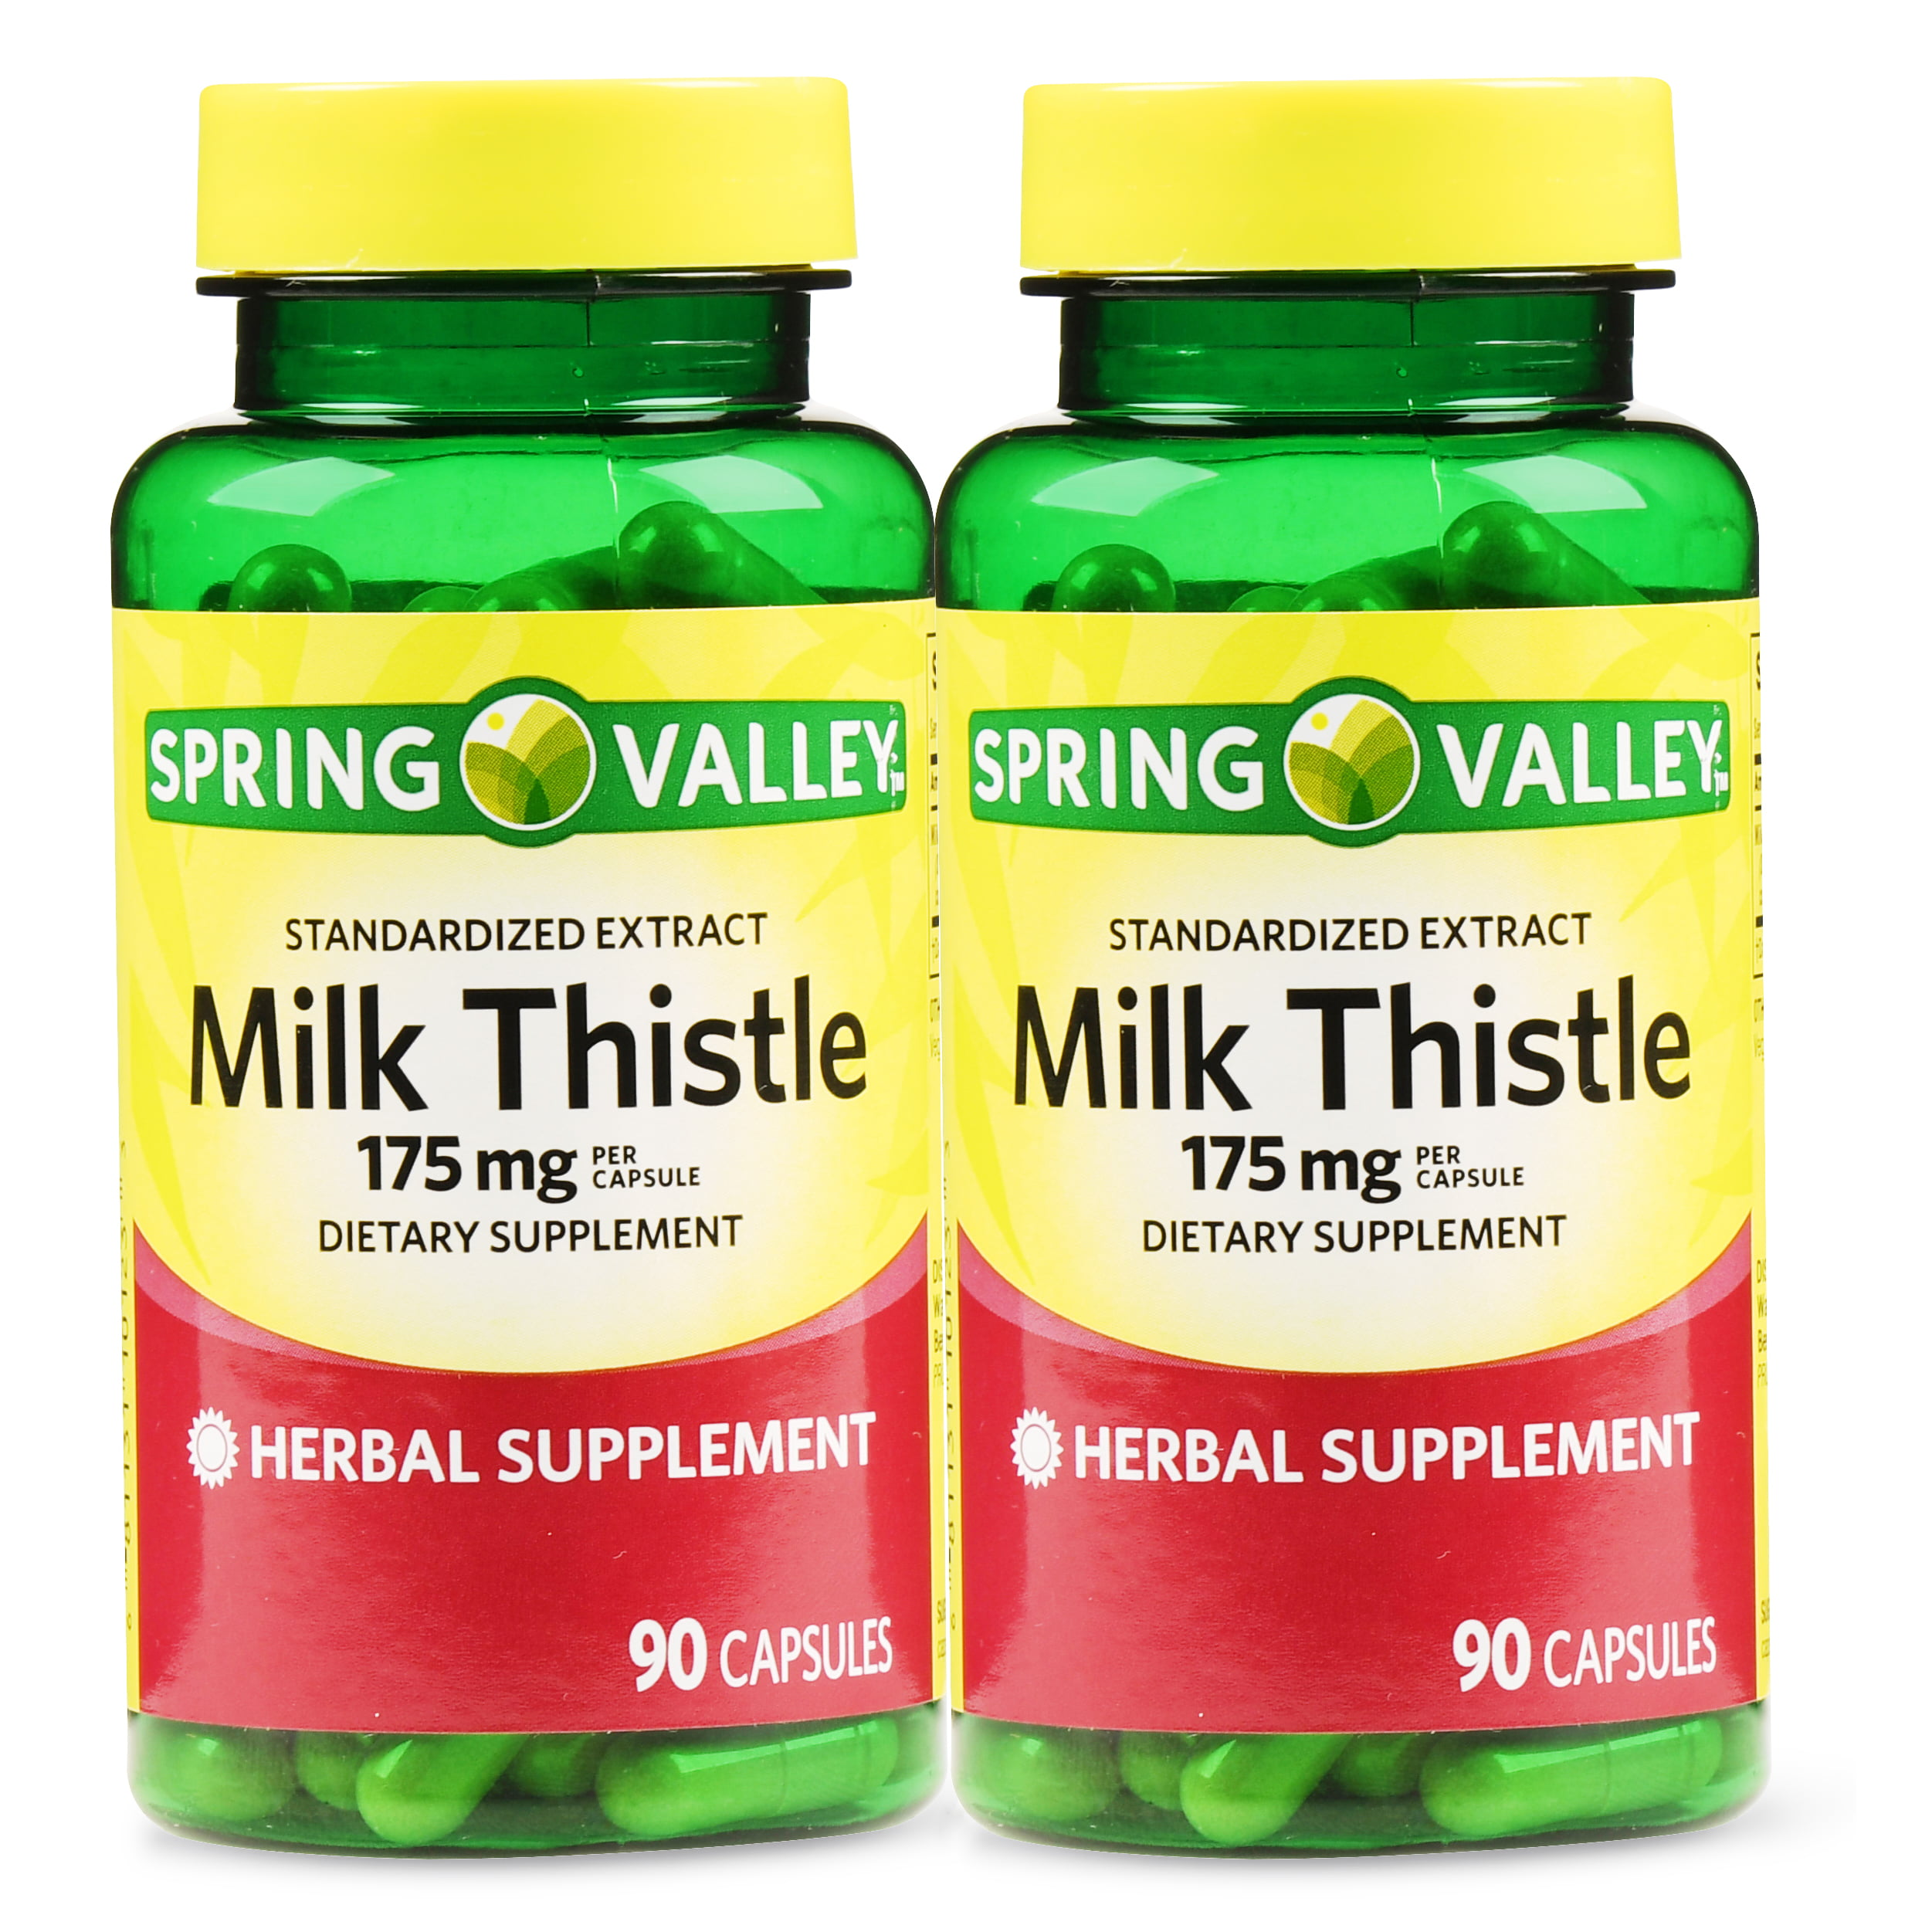 Spring Valley Cat Side Table.Spring Valley Milk Thistle Extract Capsules 175 Mg 180 Ct